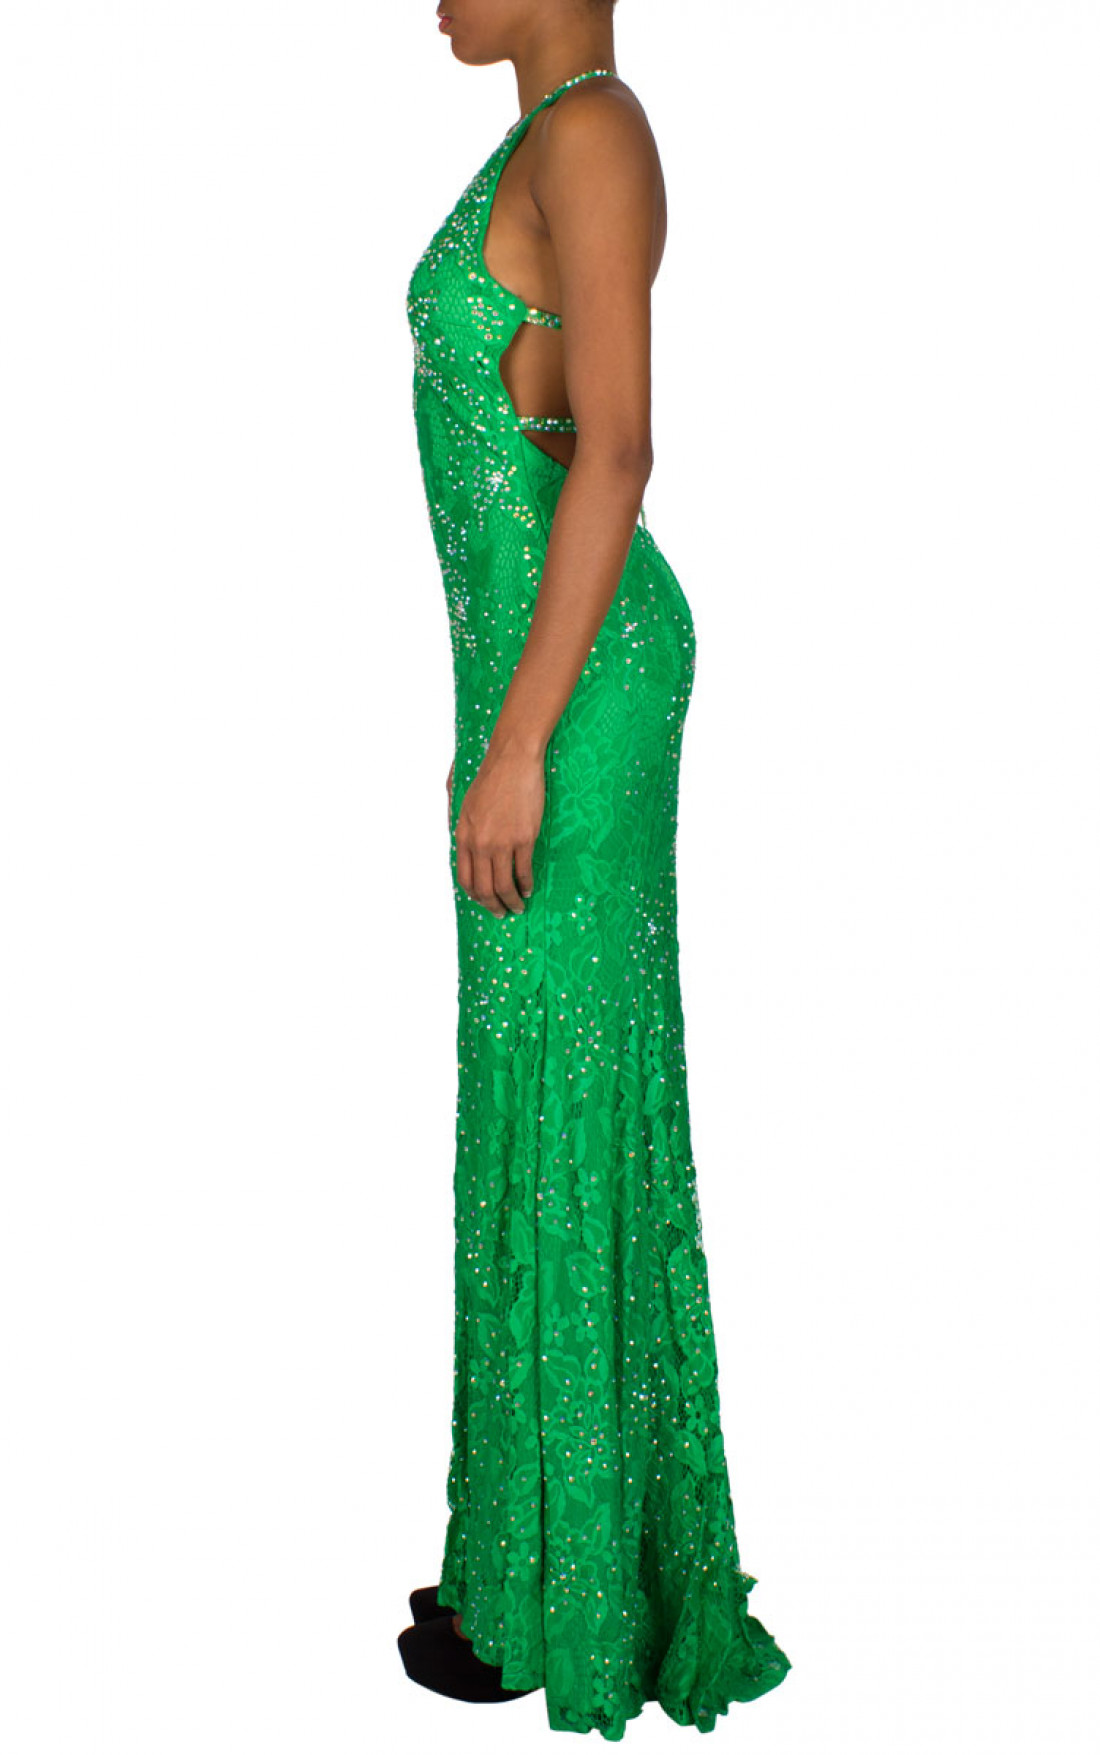 Jovani - 'Crystal Flower' Gown Emerald Side (93140A)